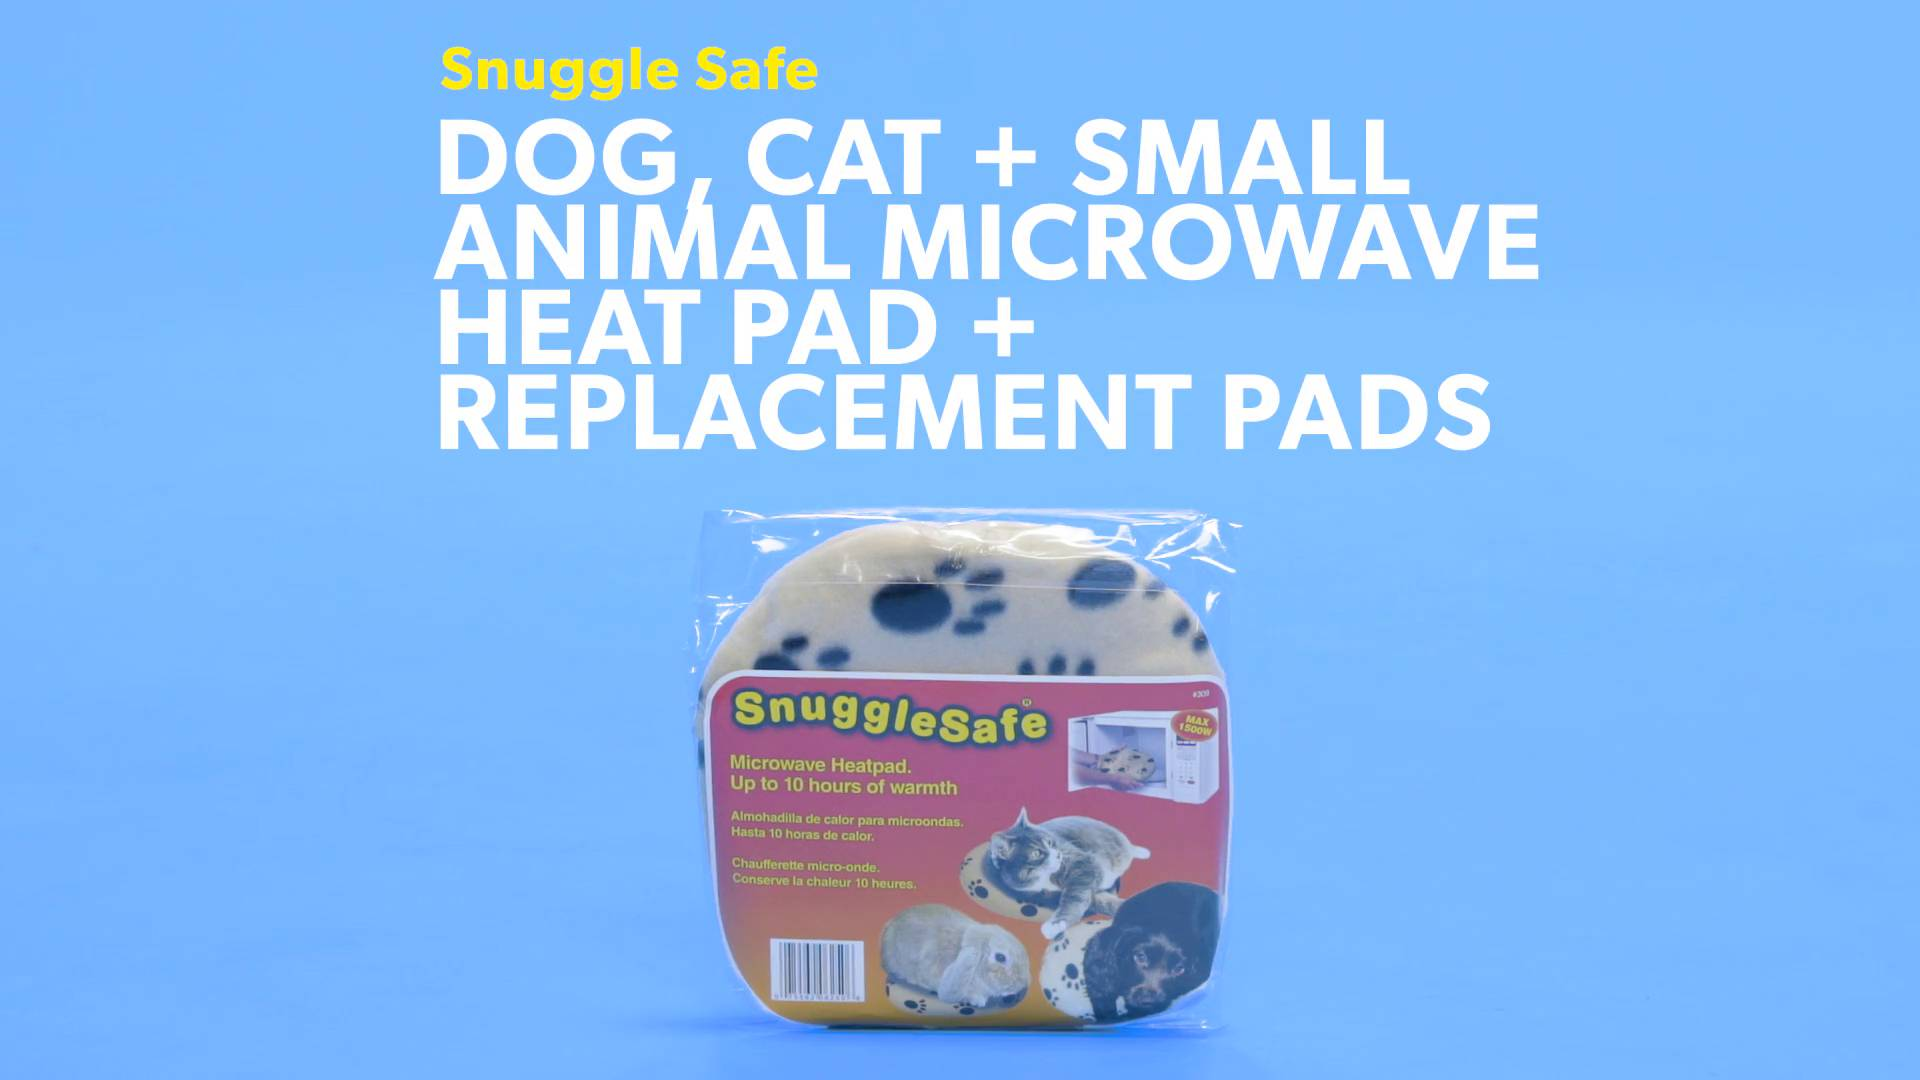 snugglesafe microwave heat pad instructions